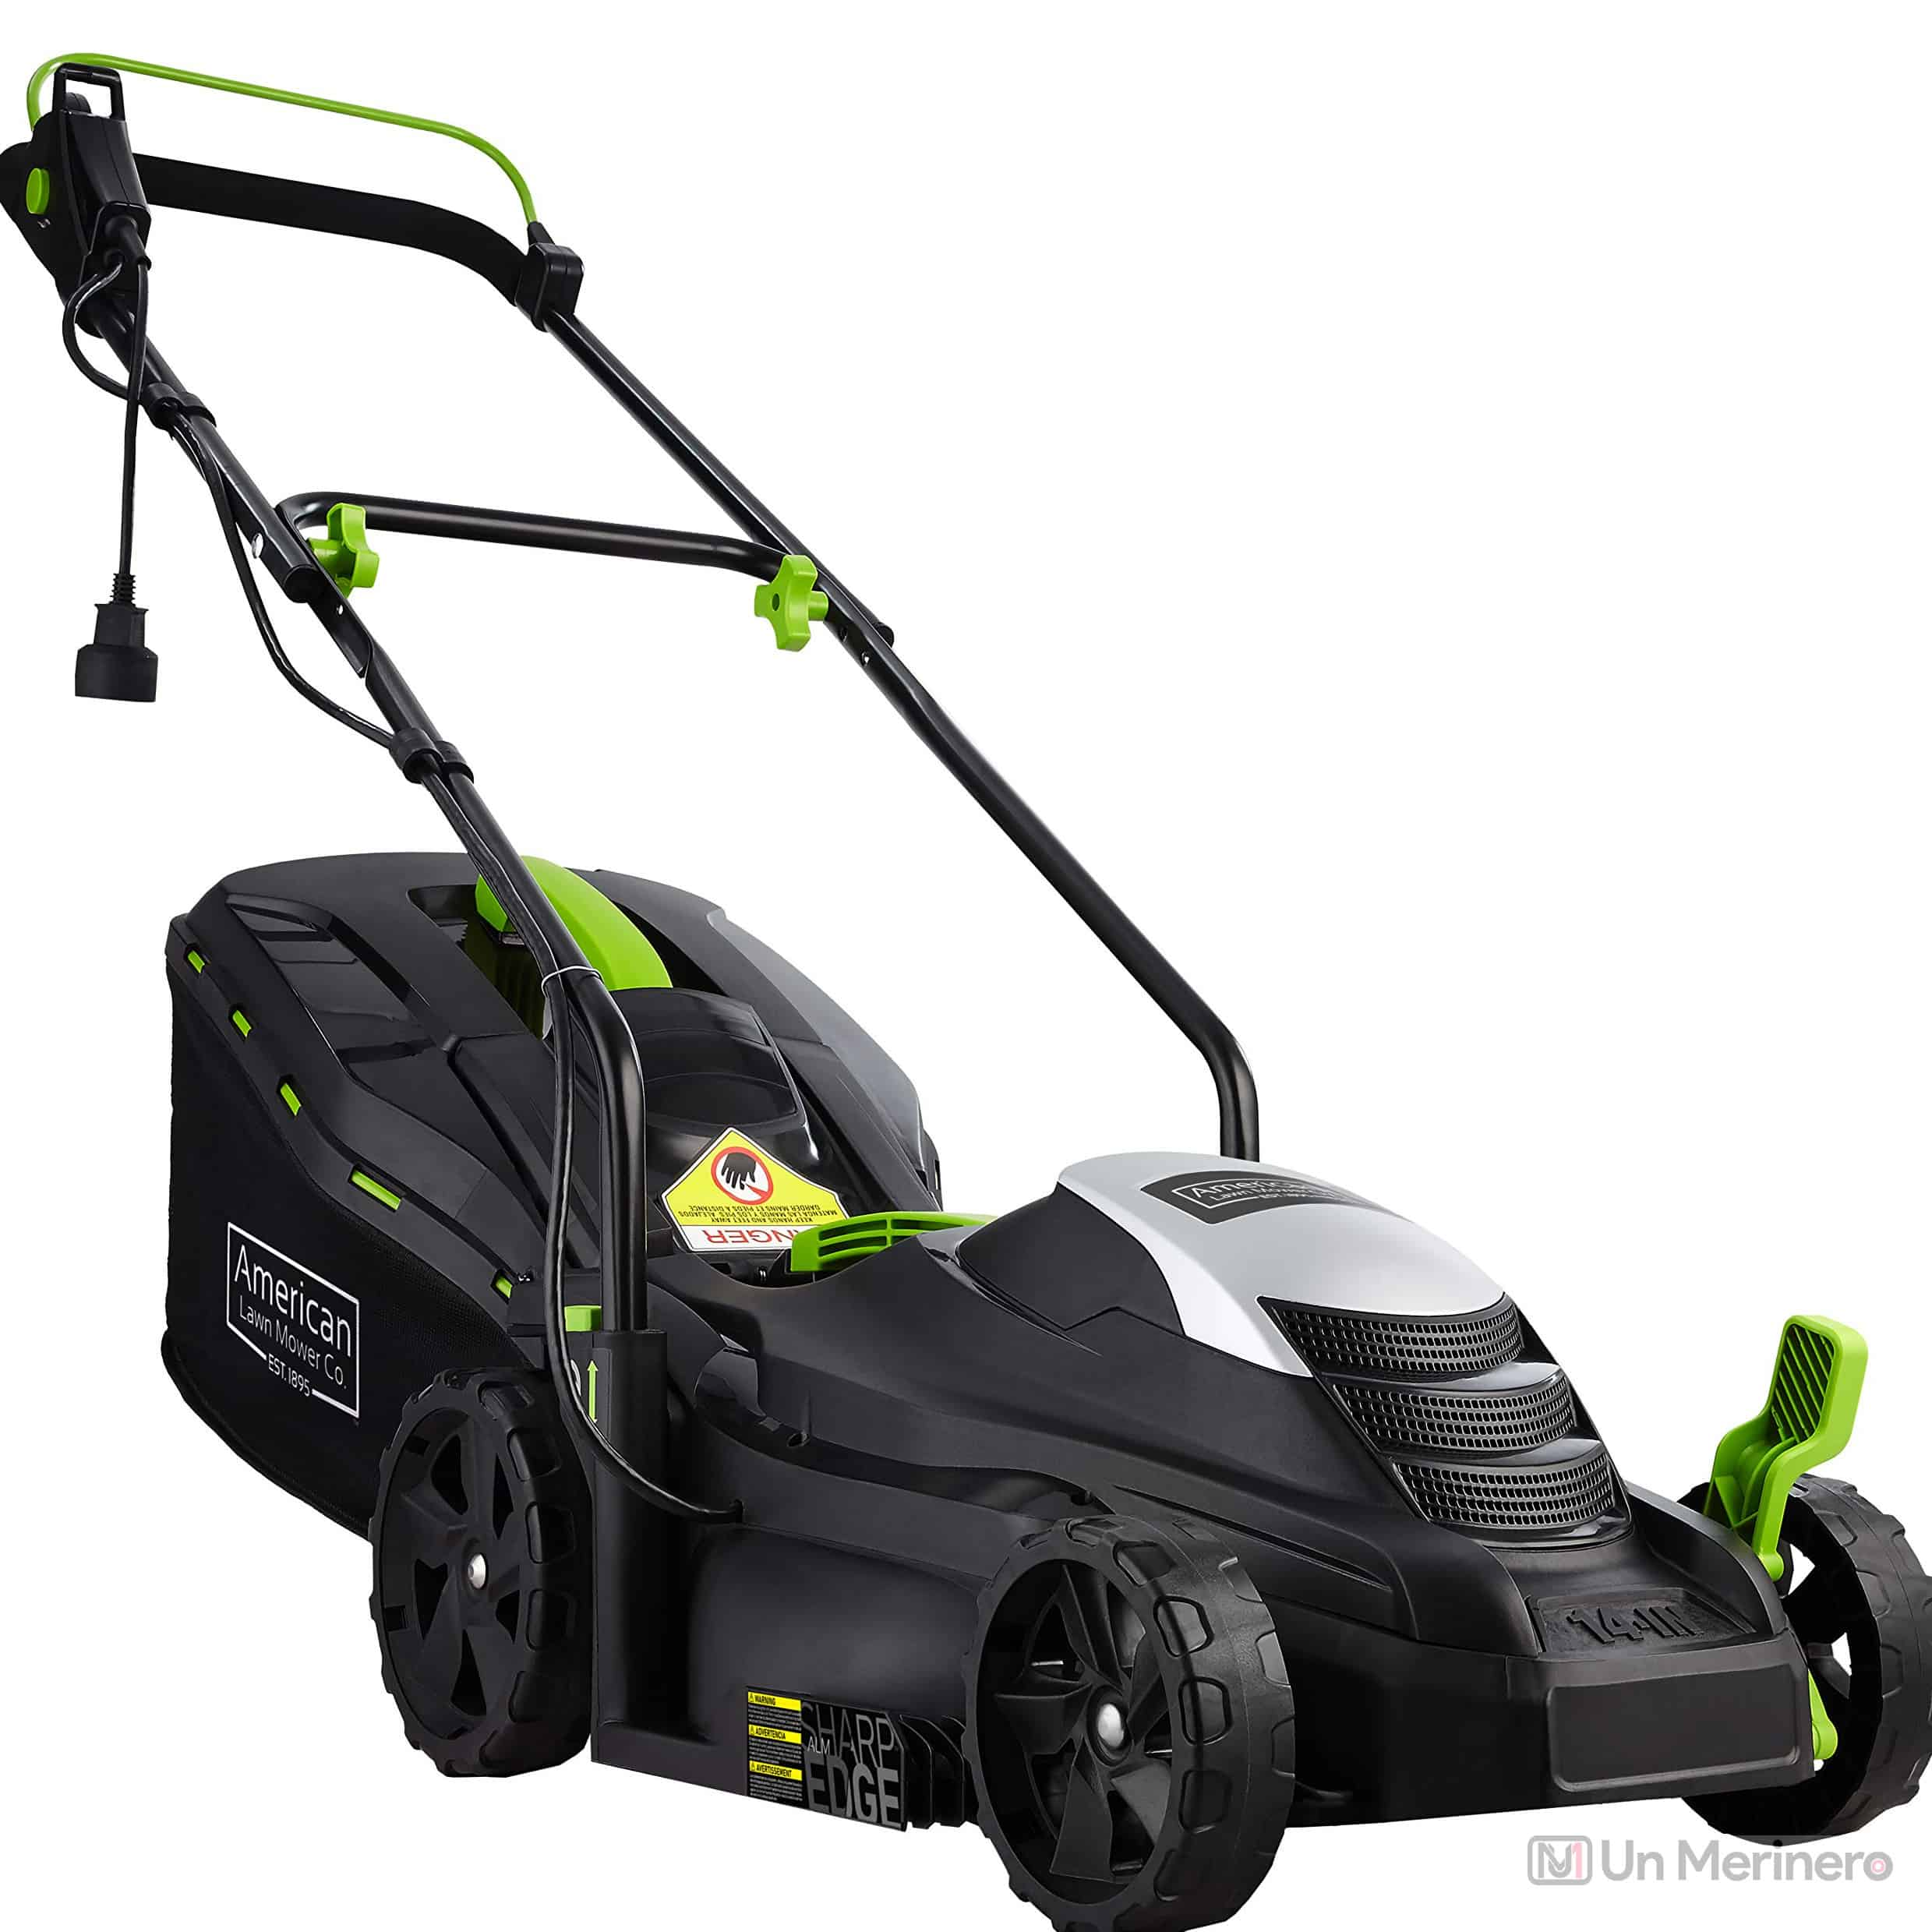 American Corded Electric Lawn Mower - Best heavy weight lawn mower for large yard